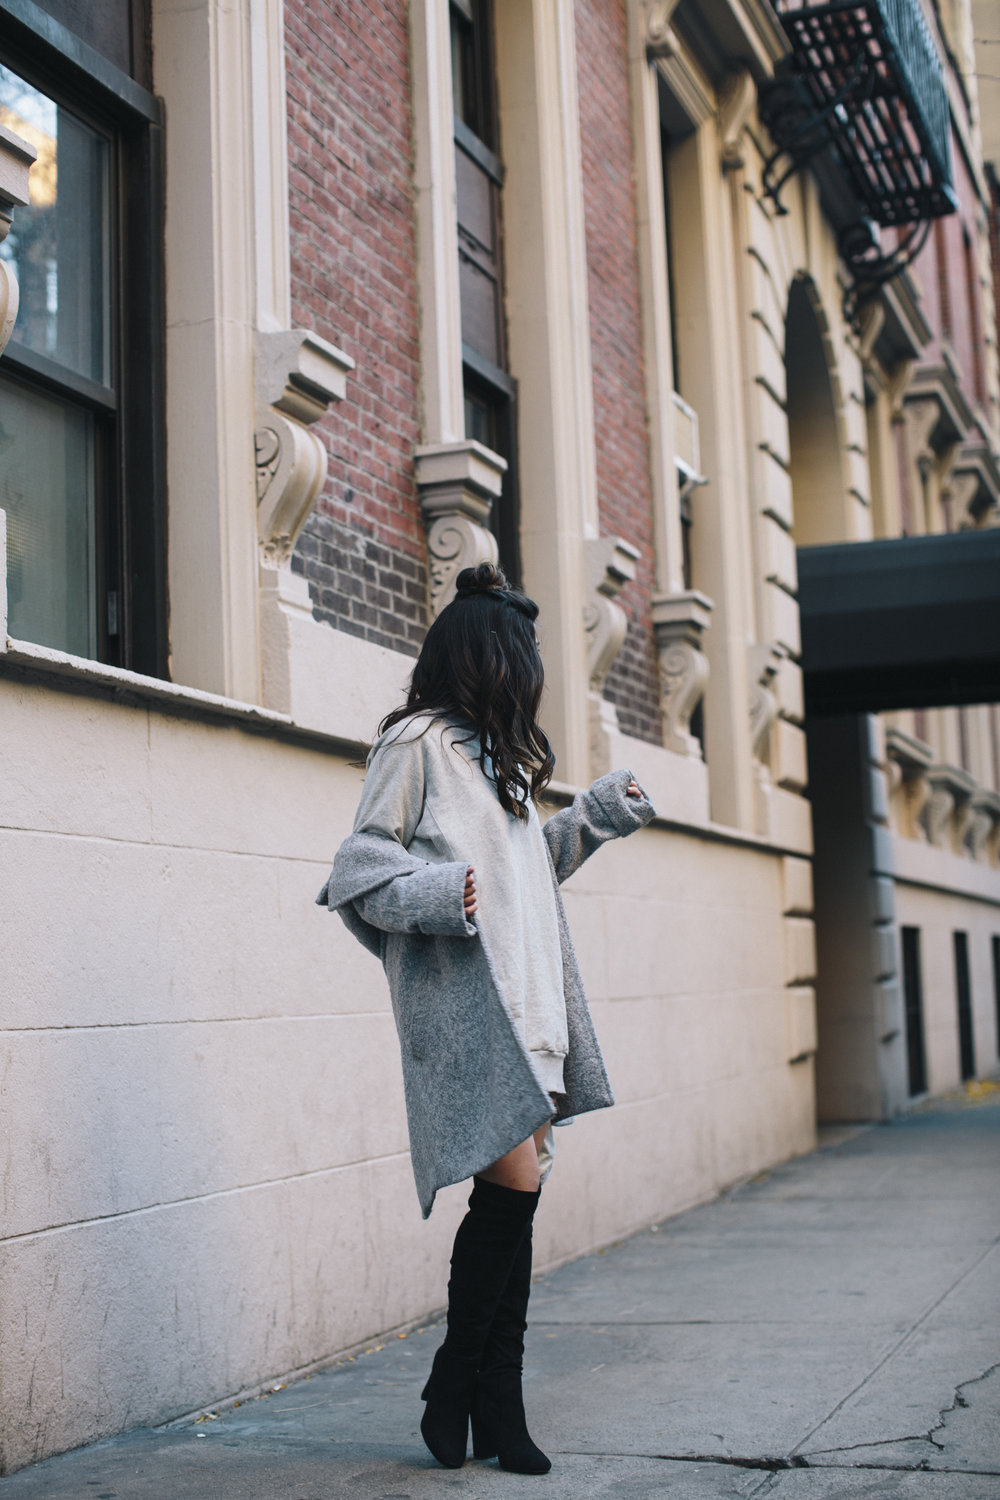 All Grey Look OTK Boots Why I Hate Fashion Week Esther Santer Fashion Blog Louboutins & Love NYC Street Style Blogger Outfit OOTD Trendy Sweatshirt Dress Topknot Coat Women Girl Shoes Shopping Zara Beauty Monochome Accessories Wear Clothes Winter Look.jpg